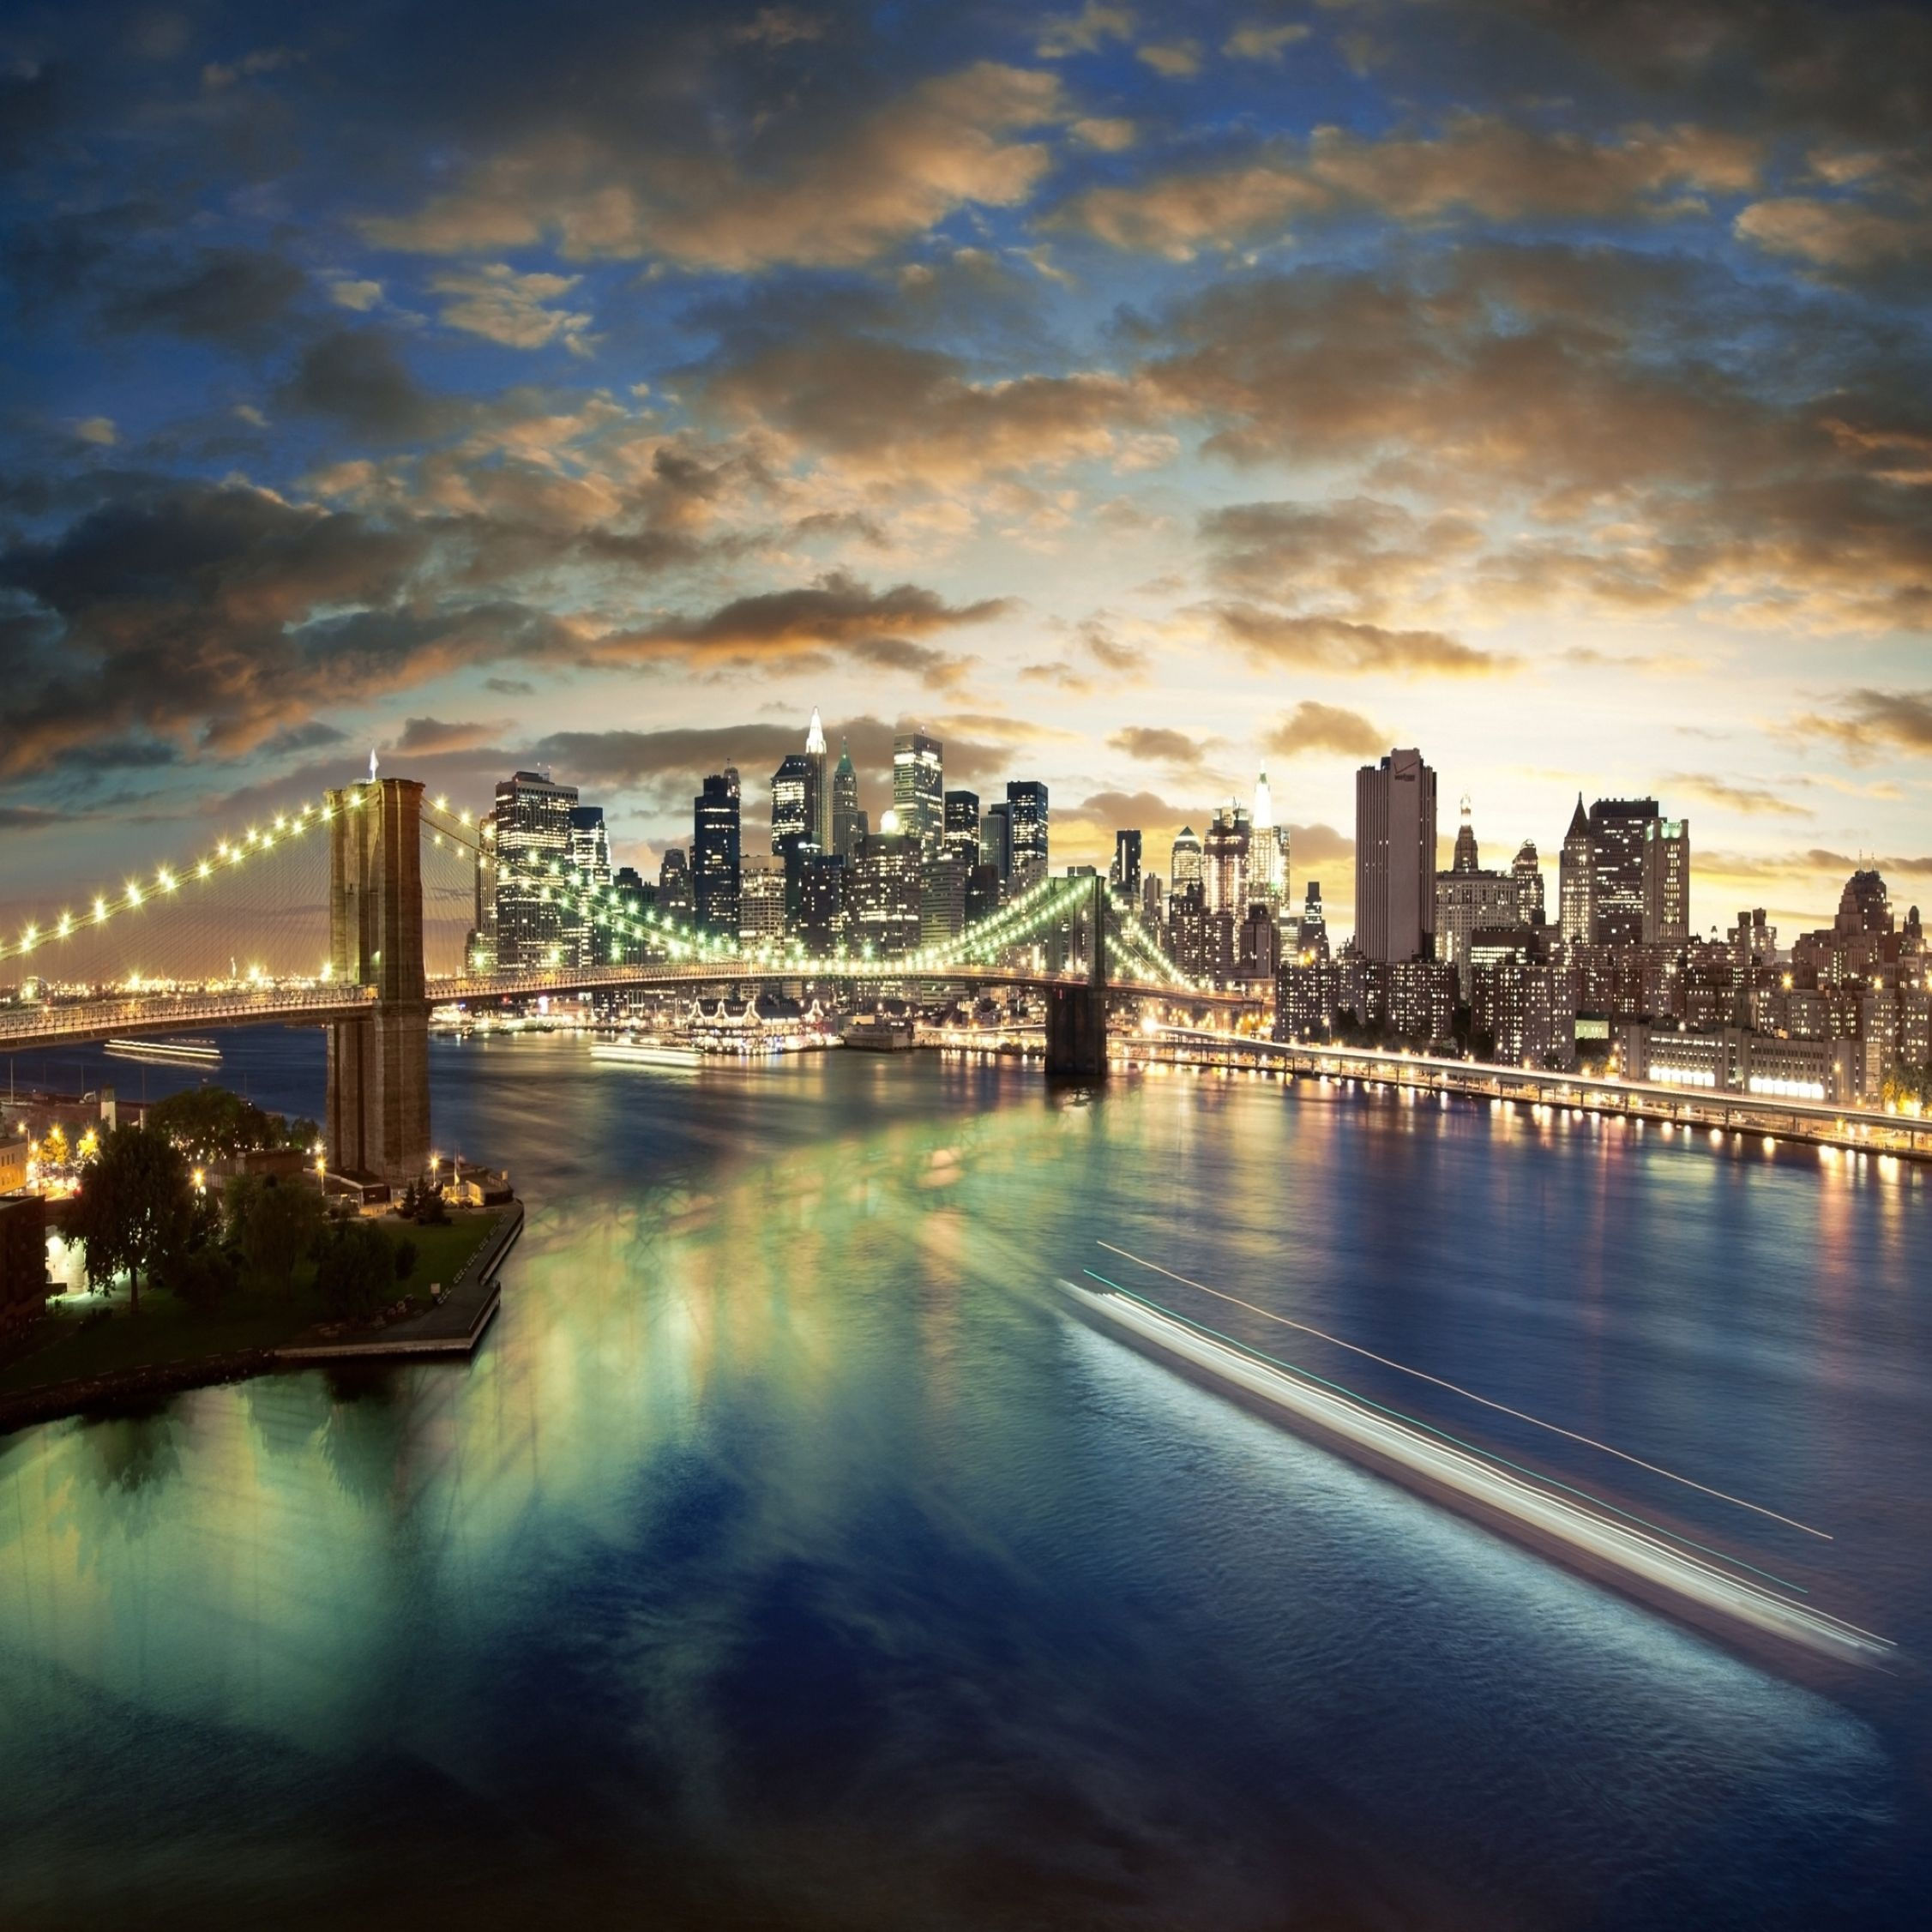 new york city for ipad wallpaper: desktop hd wallpaper - download